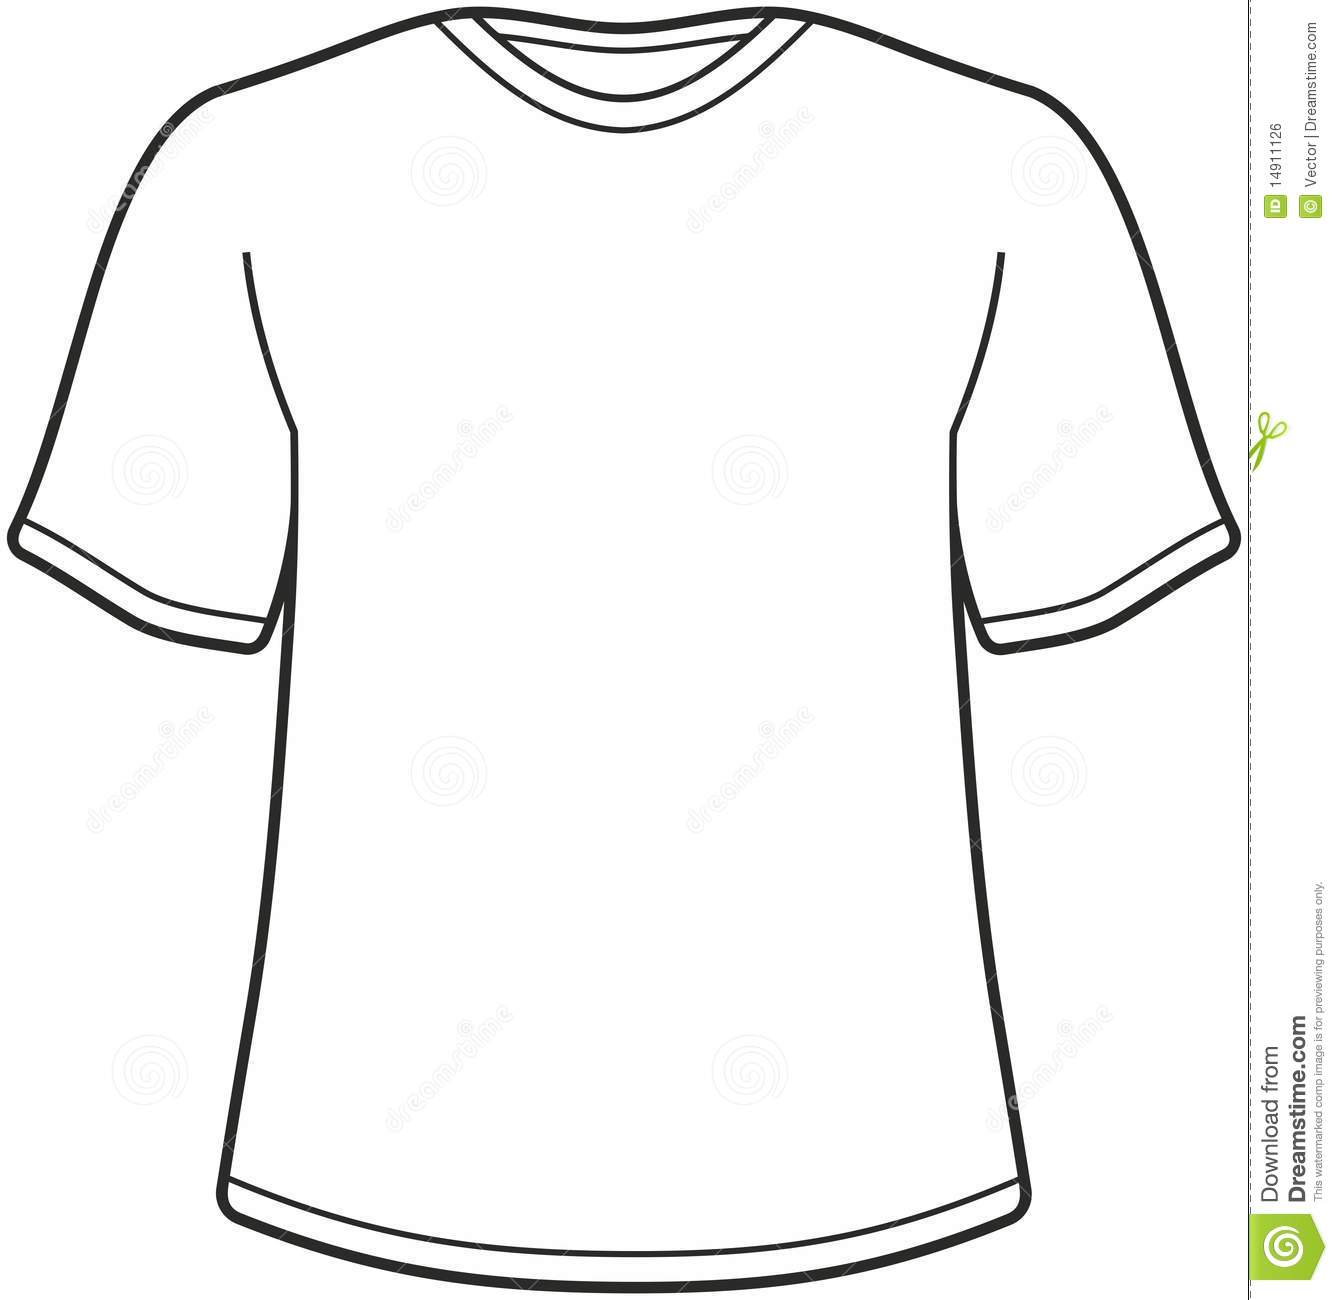 Illustration Du T Shirt Des Hommes Illustration De Vecteur